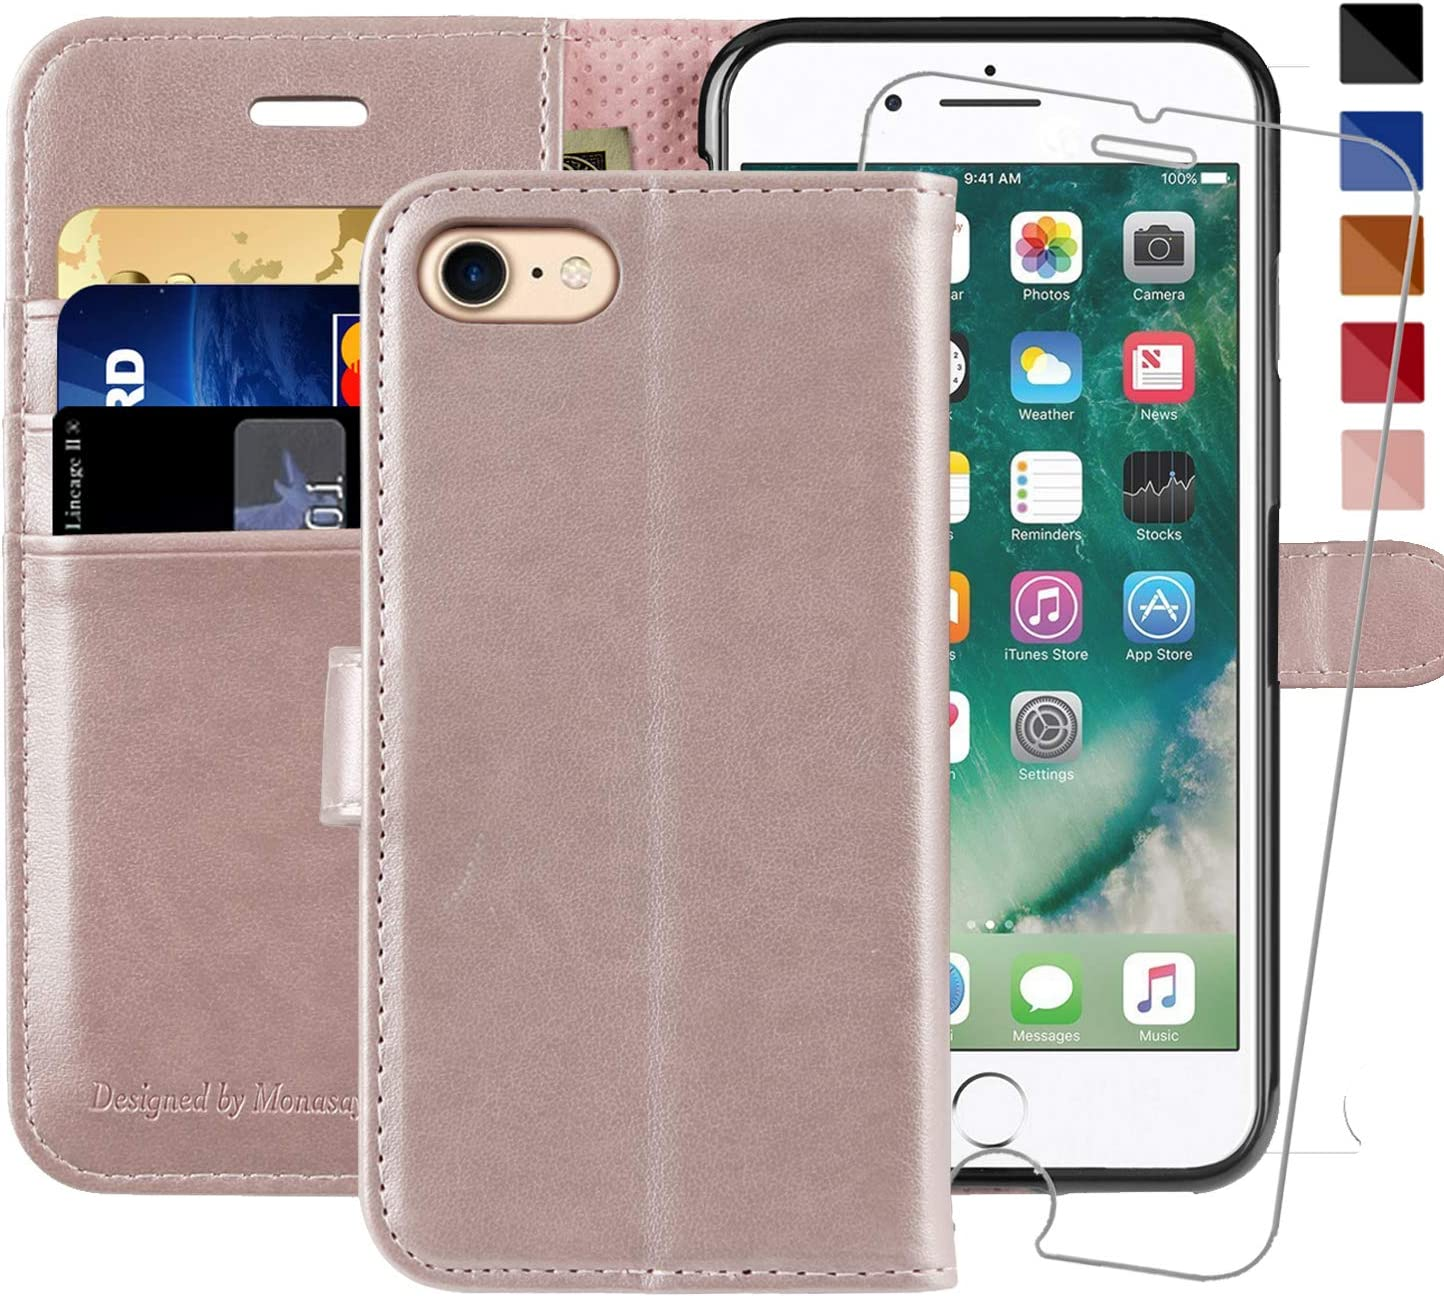 iPhone 7 Wallet Case/iPhone 8 Wallet Case,4.7-inch,MONASAY [Glass Screen Protector Included] Flip Folio Leather Cell Phone Cover with Credit Card Holder for Apple iPhone 7/8